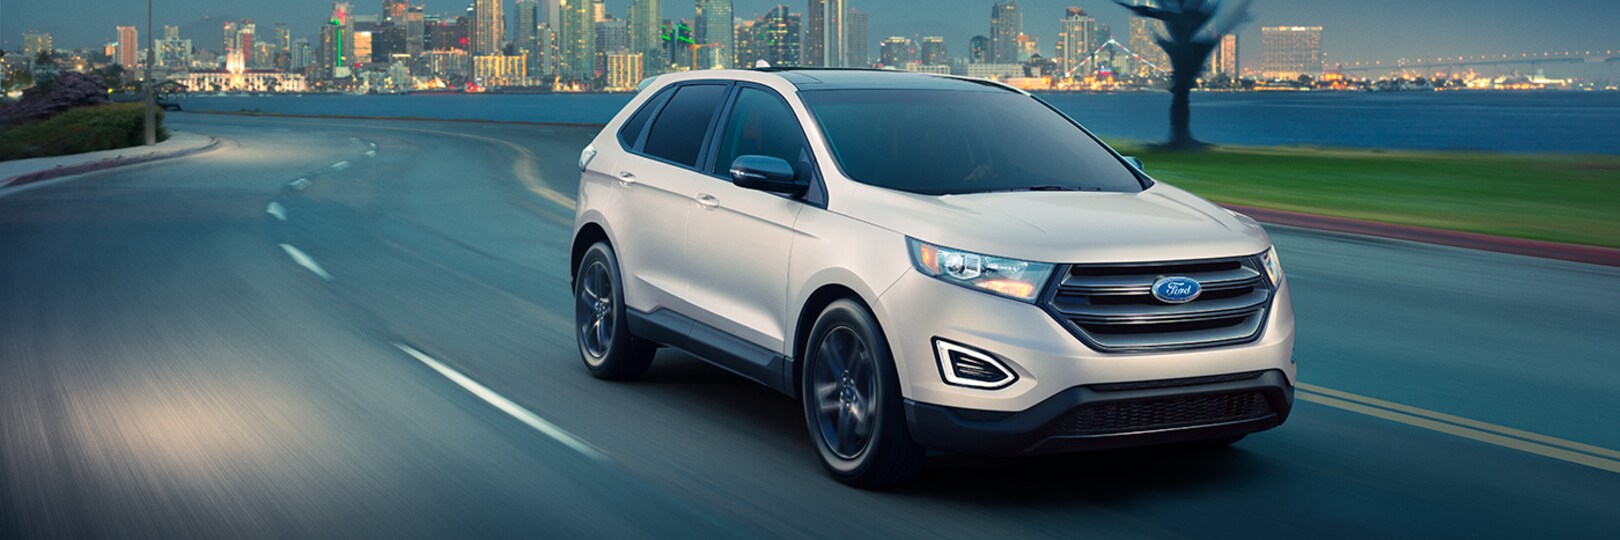 dealership danvers suv ford se dealers ma escape in